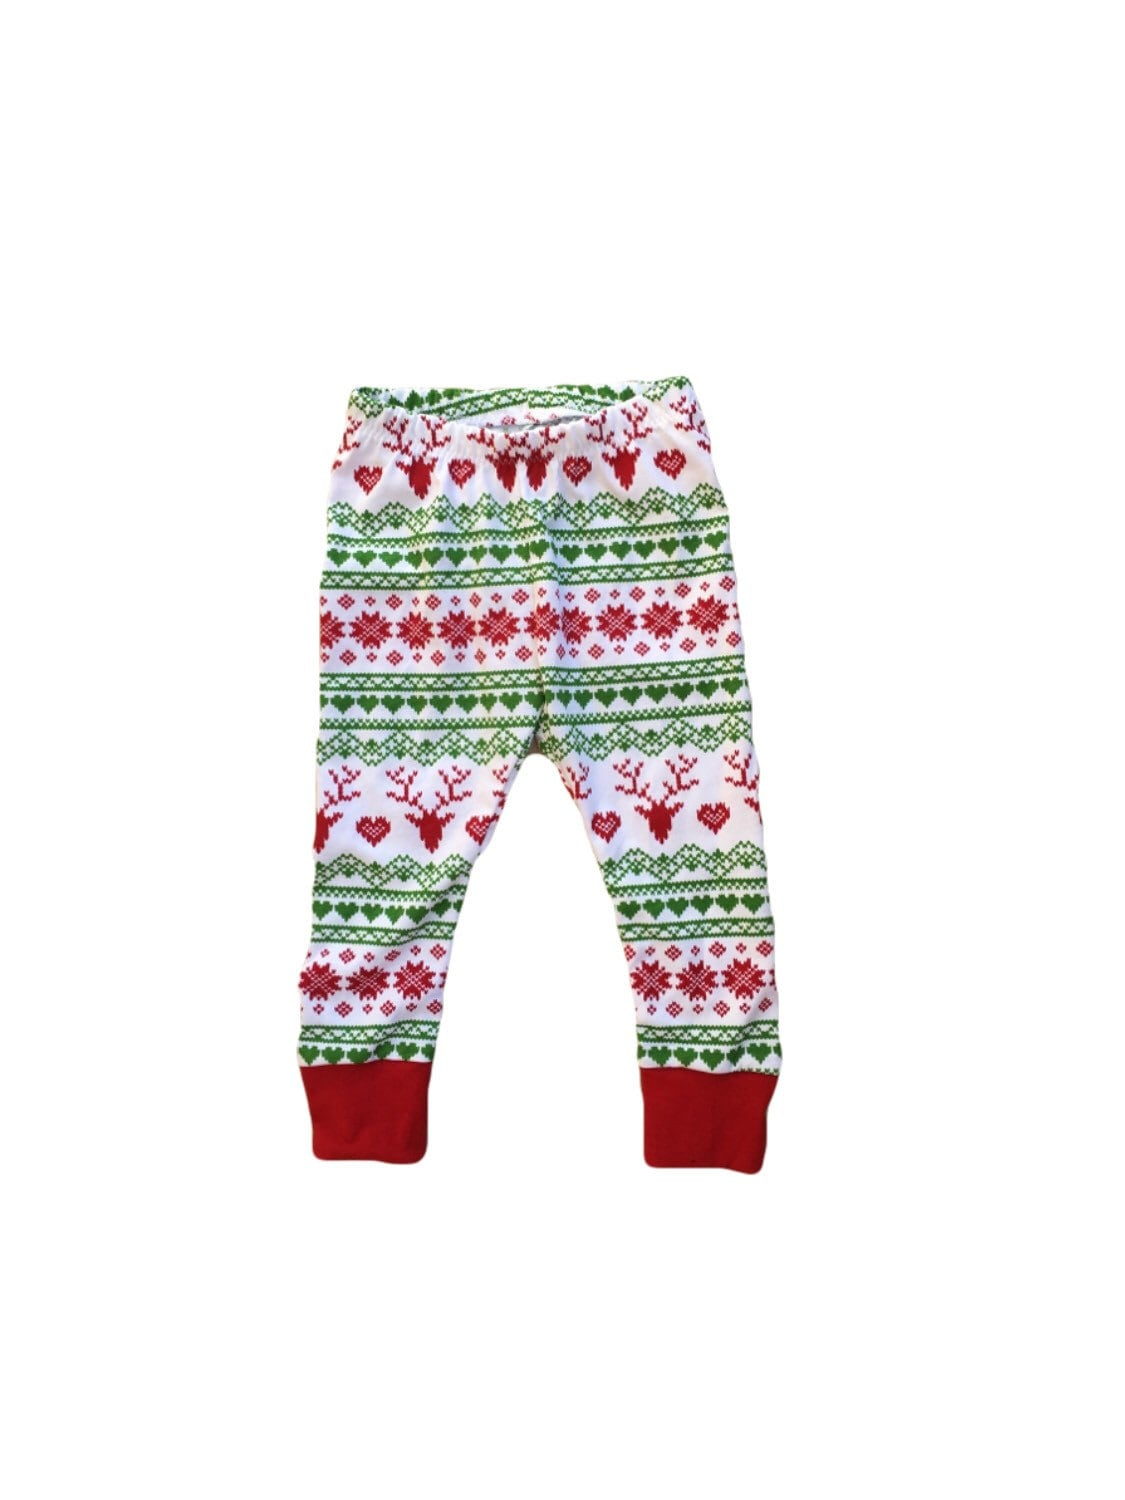 Shop for infant holiday tights online at Target. Free shipping on purchases over $35 5% Off W/ REDcard · Same Day Store Pick-Up · Free Shipping $35+ · Same Day Store Pick-UpBrands: Baby Bath Tubs, Baby Clothes, Baby Furniture, Baby Food, Baby Formula.